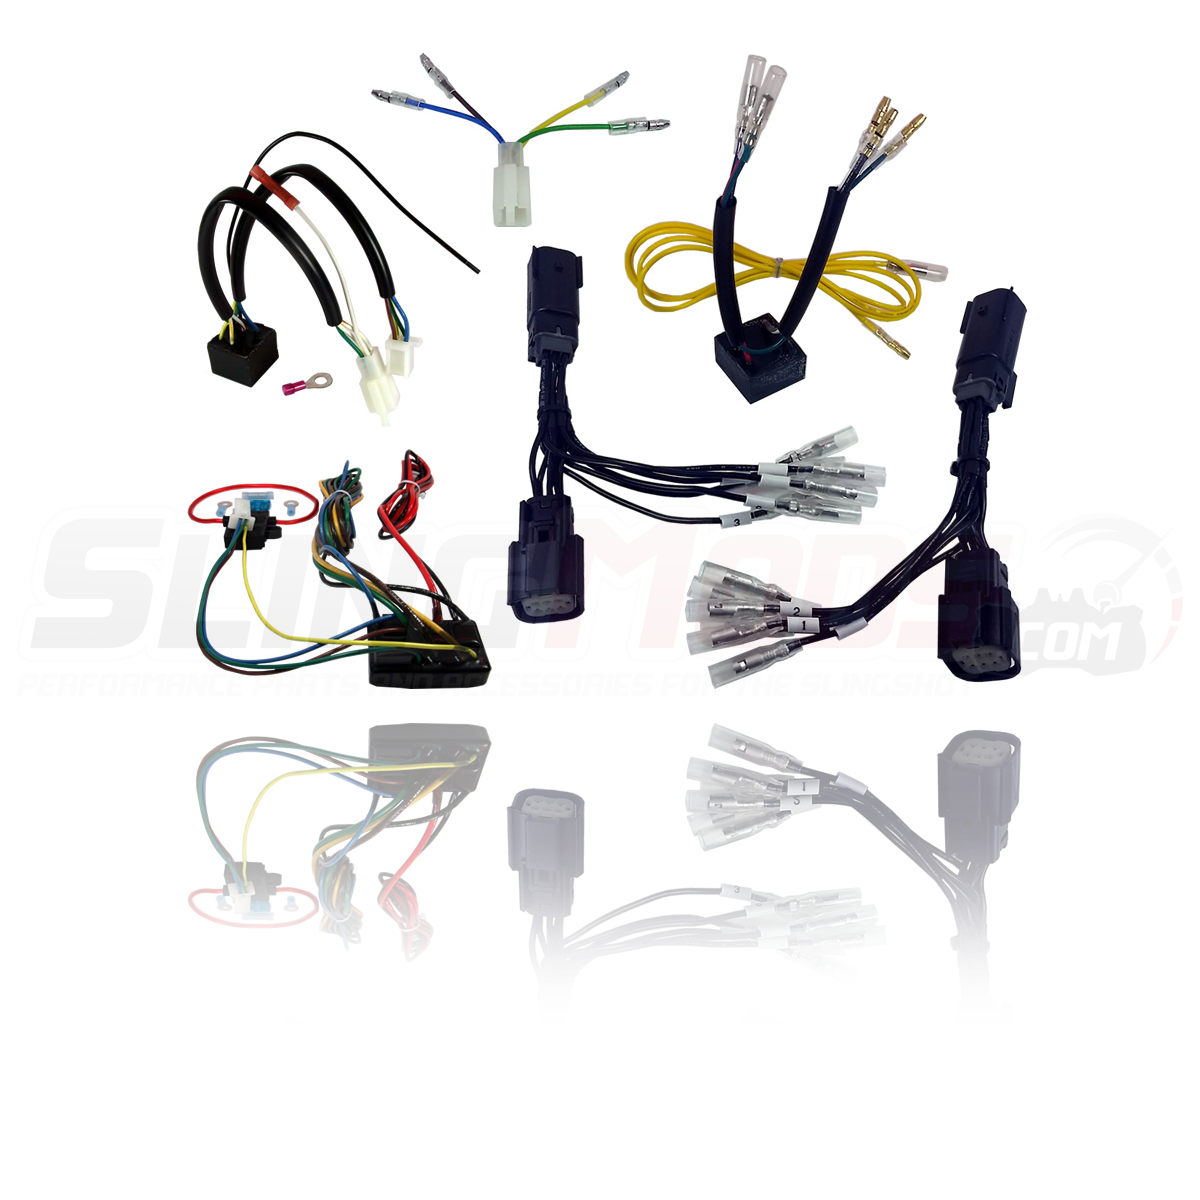 polaris slingshot trailer harness polaris slingshot trailer wiring harness electrical harness at bayanpartner.co